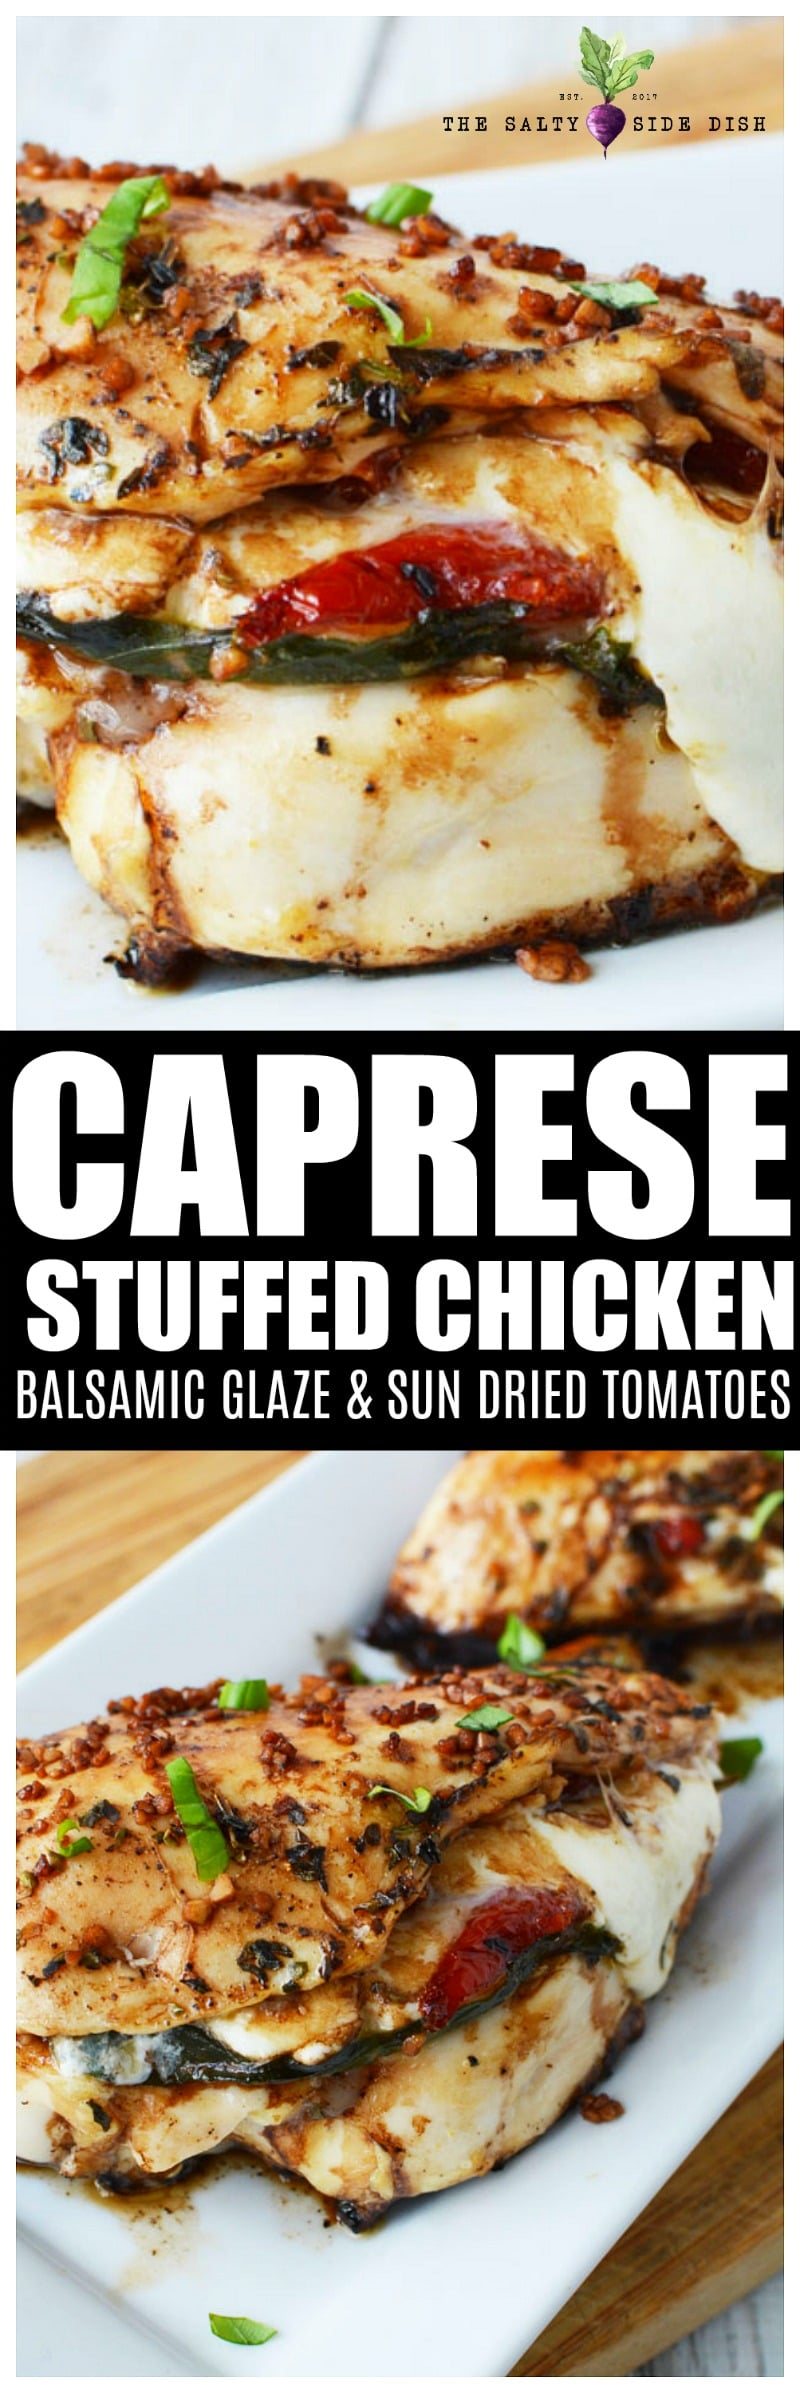 Caprese Stuffed chicken with balsamic glaze has delicious tomatoes and mozzarella cheese and is a perfect chicken breast recipe #chicken #chickenbreasts #caprese #bakedchicken #chickendinner #recipes